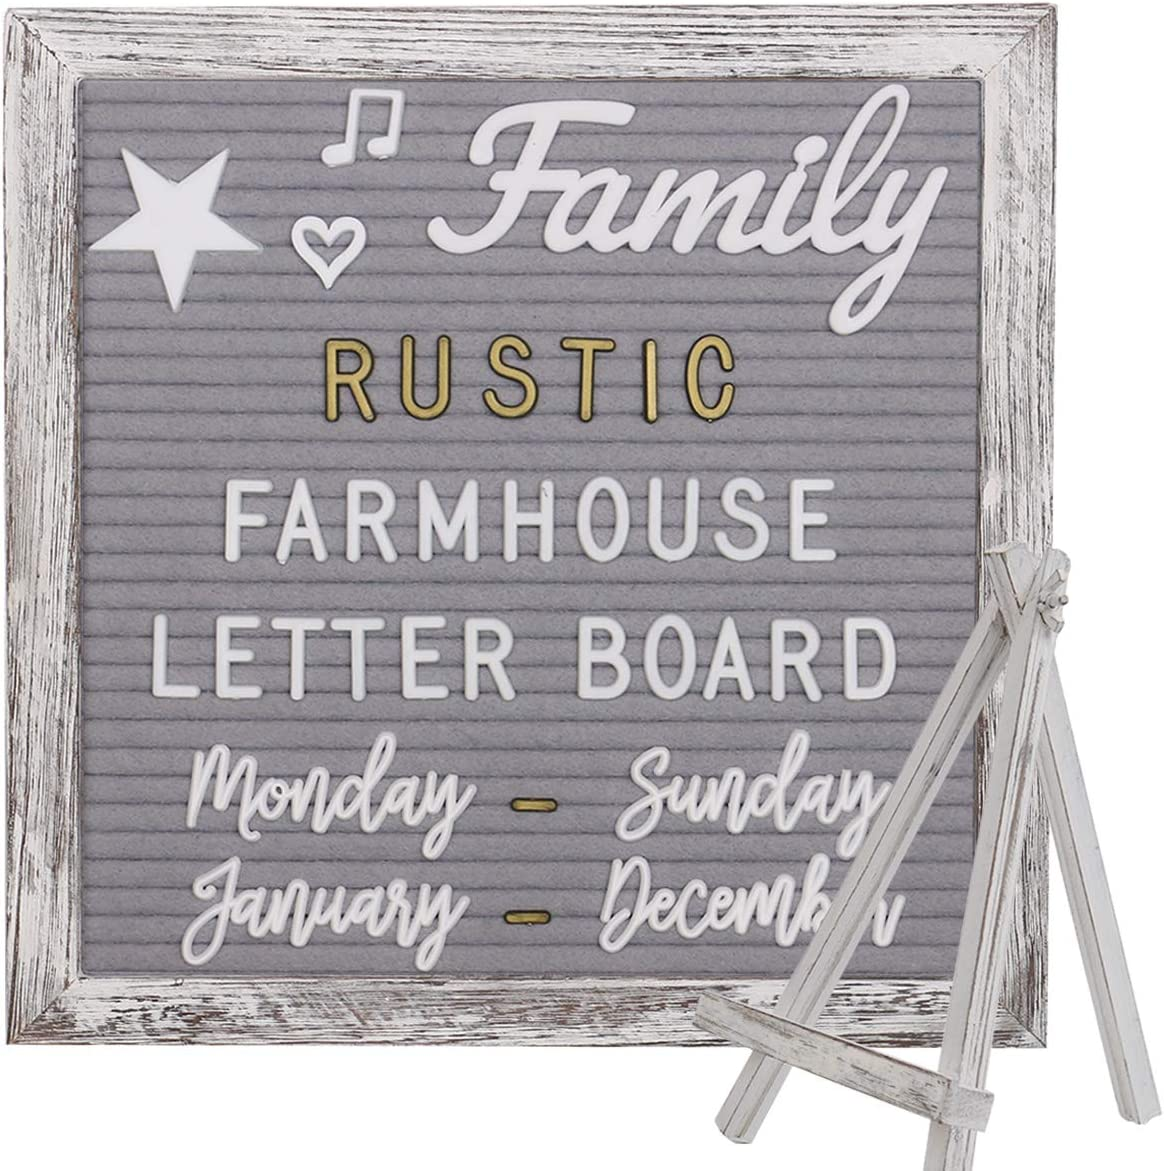 Farmhouse Rustic Gray Felt Letter Board 10x10 Inches with Stand Easel + 748 Pre-Cut Letters + 11 Cursive Words Shabby Chic Wood Frame Changeable Message Board with Letters (White and Metal Gold)